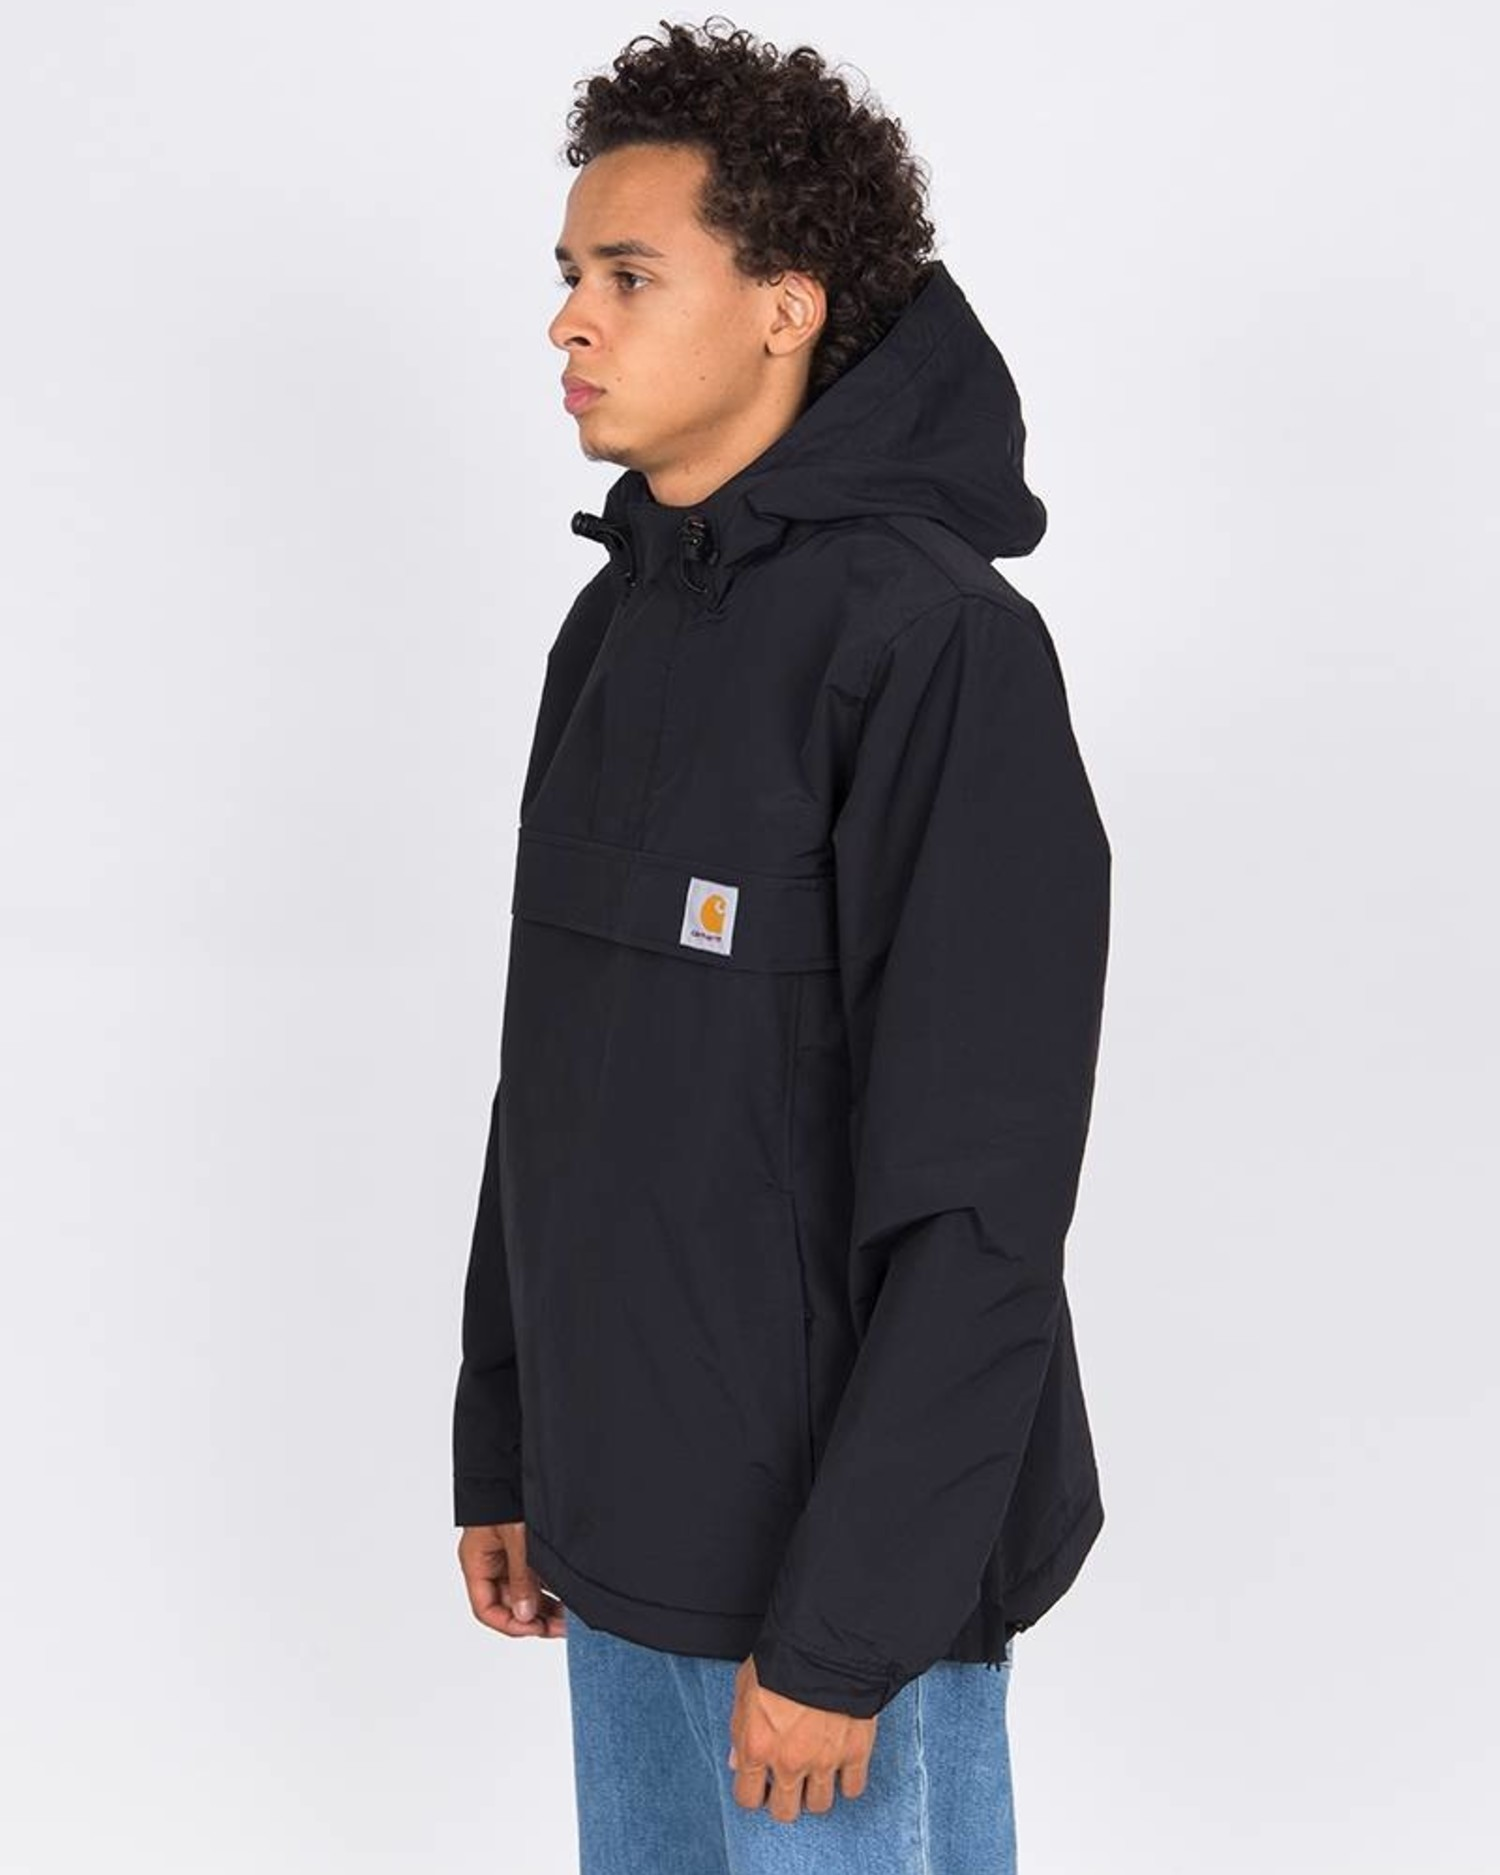 Carhartt Nimbus Fleece Lined Pullover Black